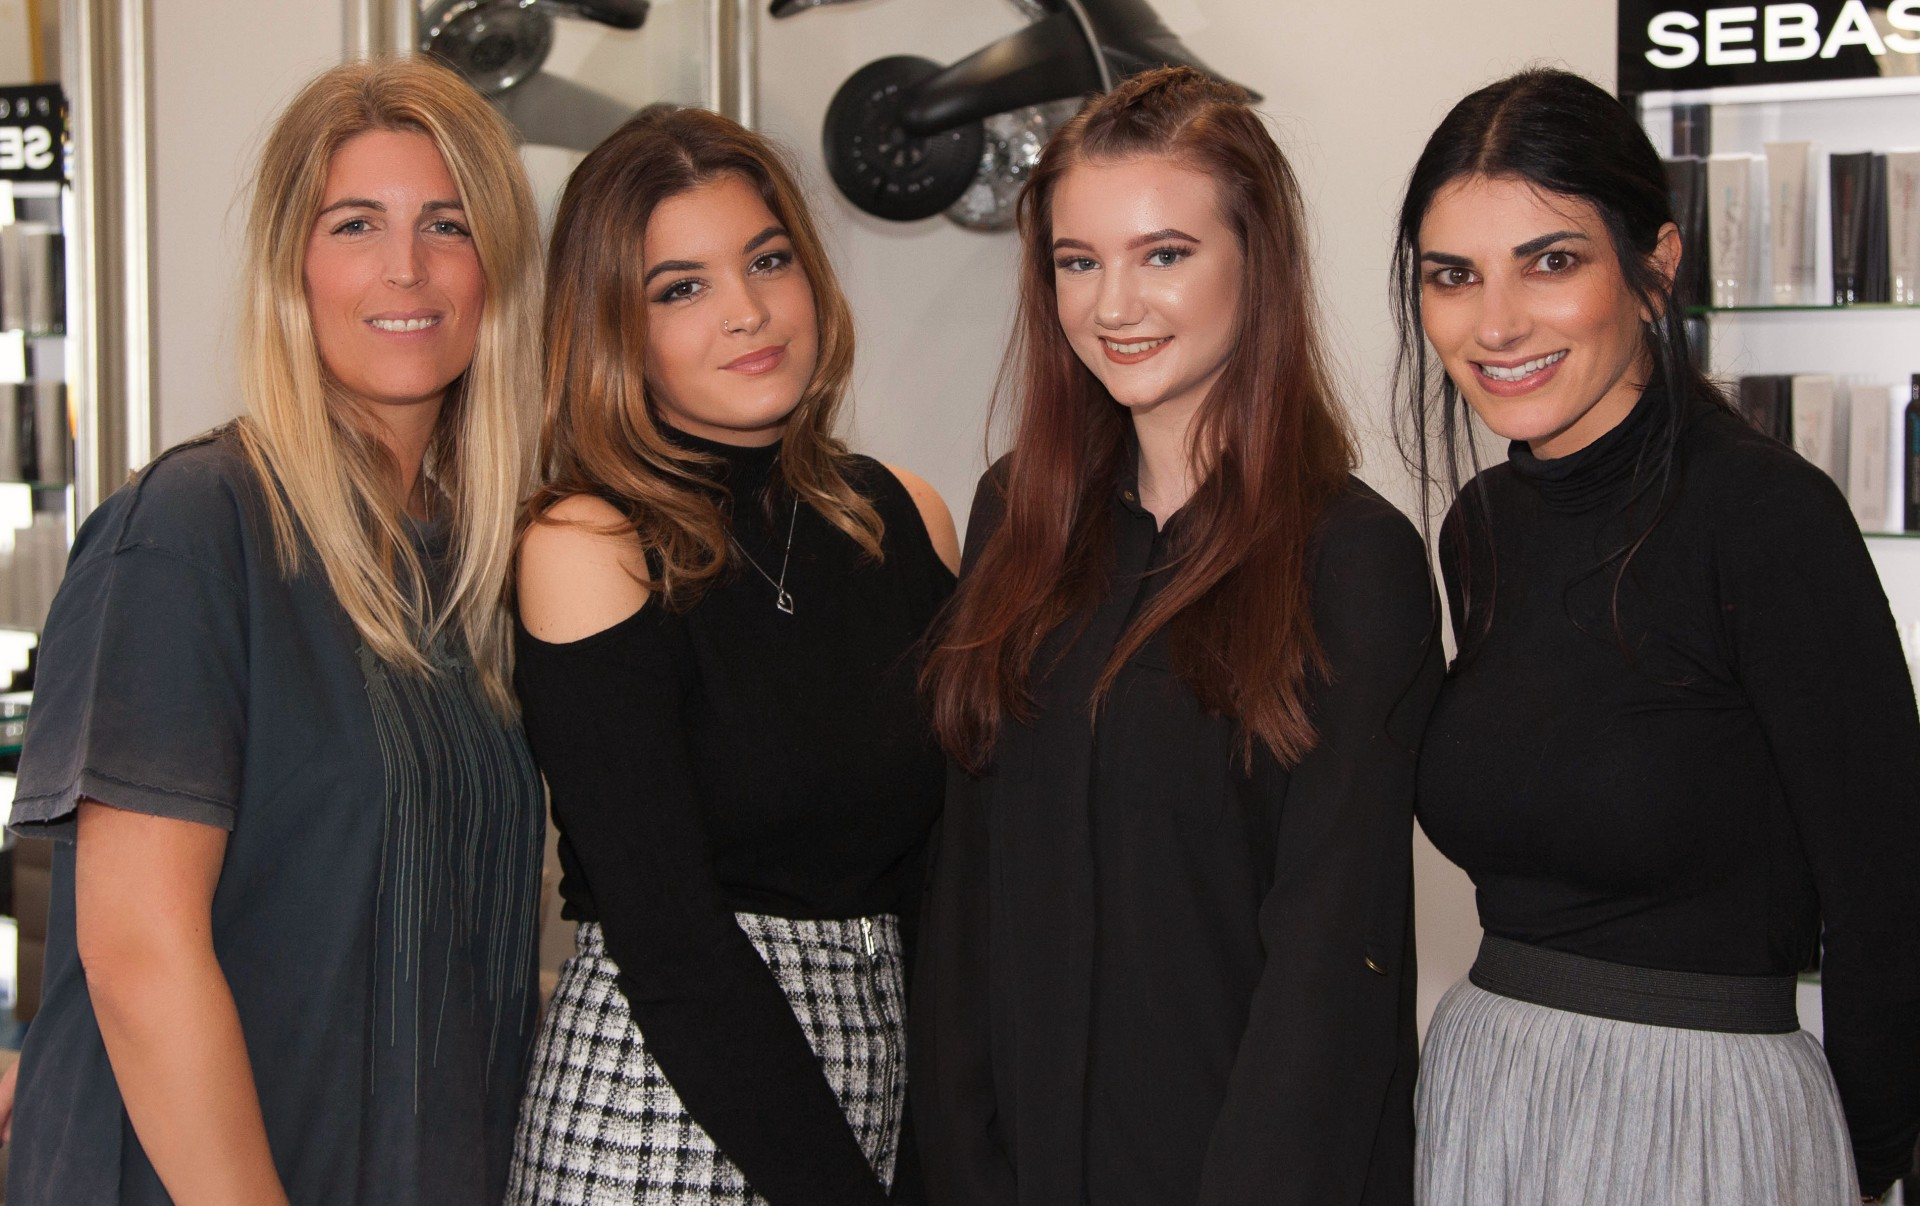 left to right - Laura Duce, Bianca Southall, Sophie Knowles and Annabell Romao